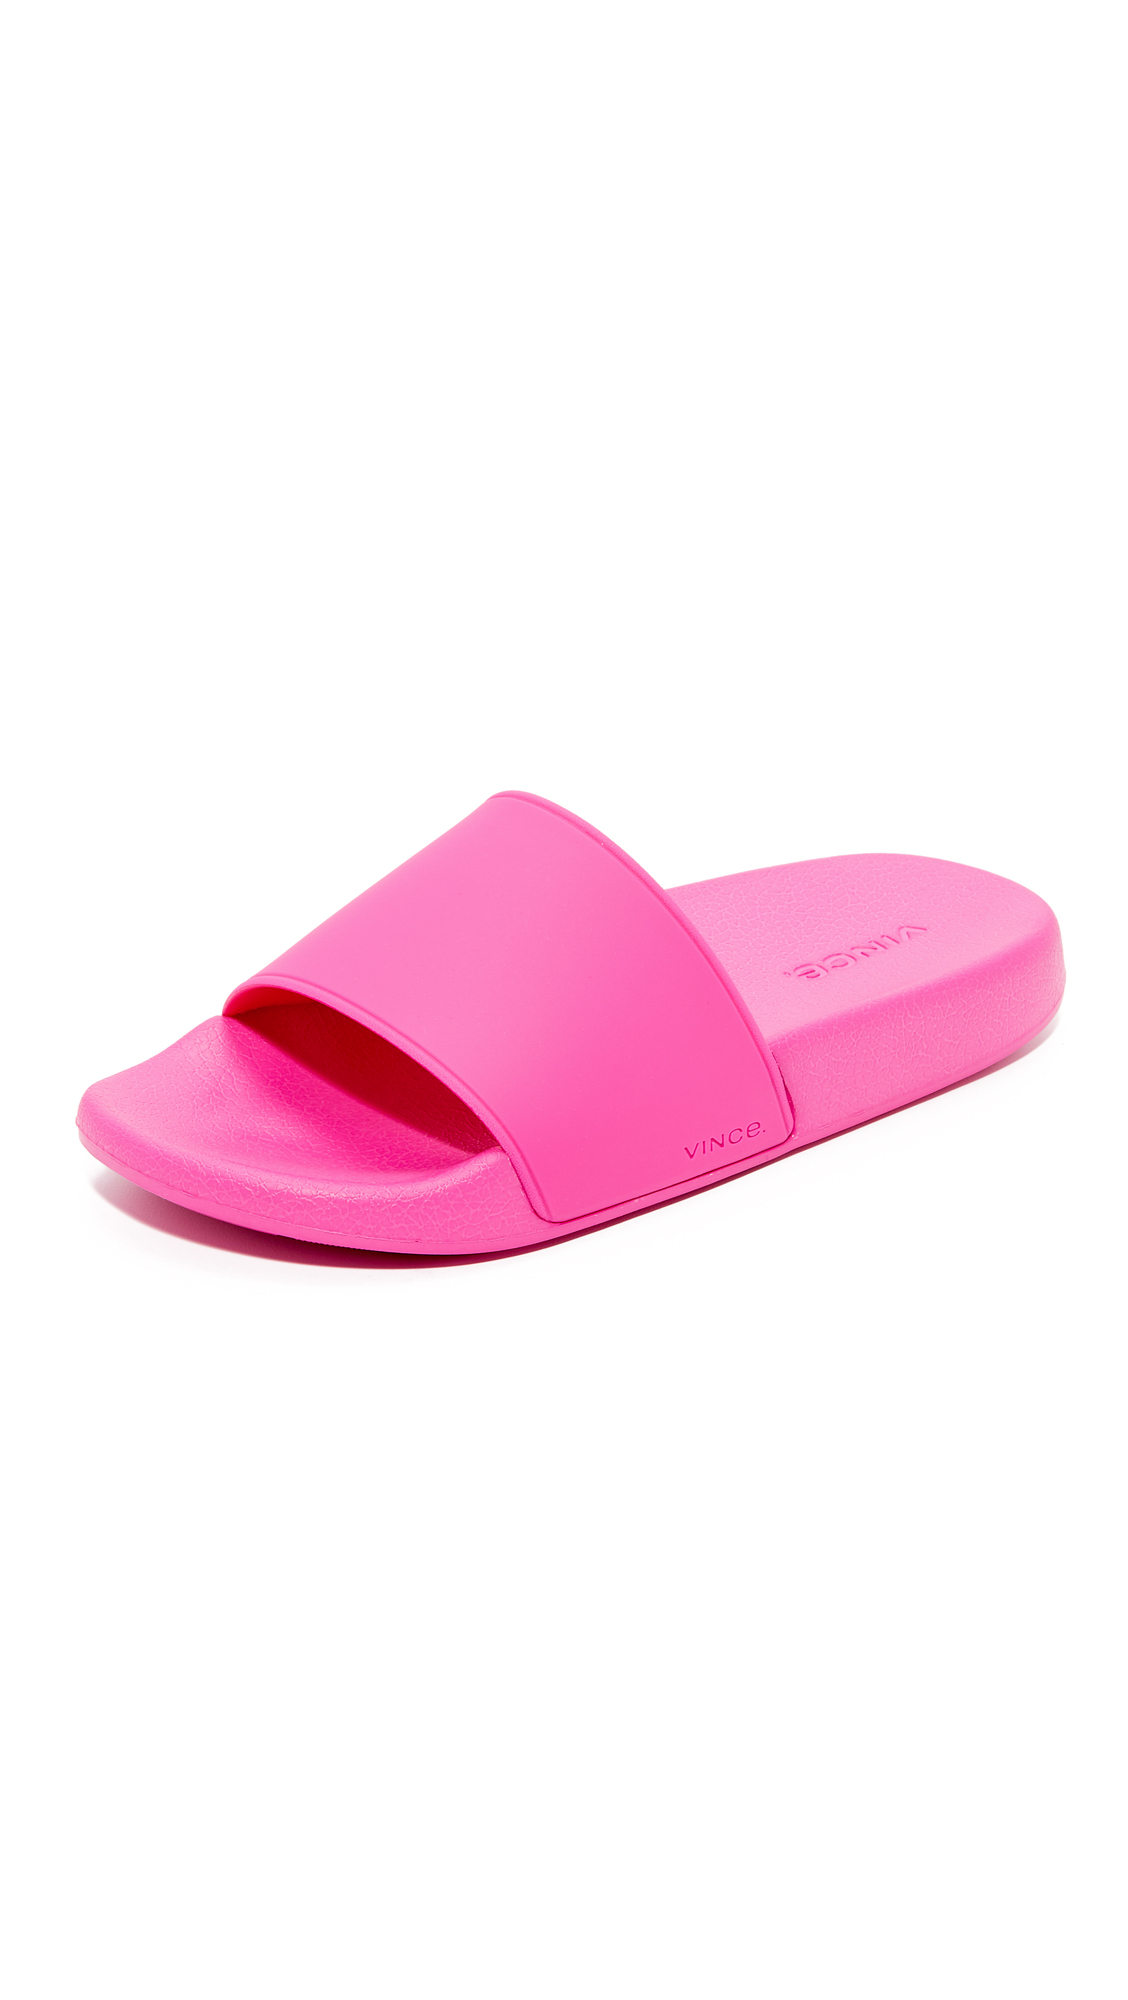 Vince Westcoast Slide Sandals - Magenta